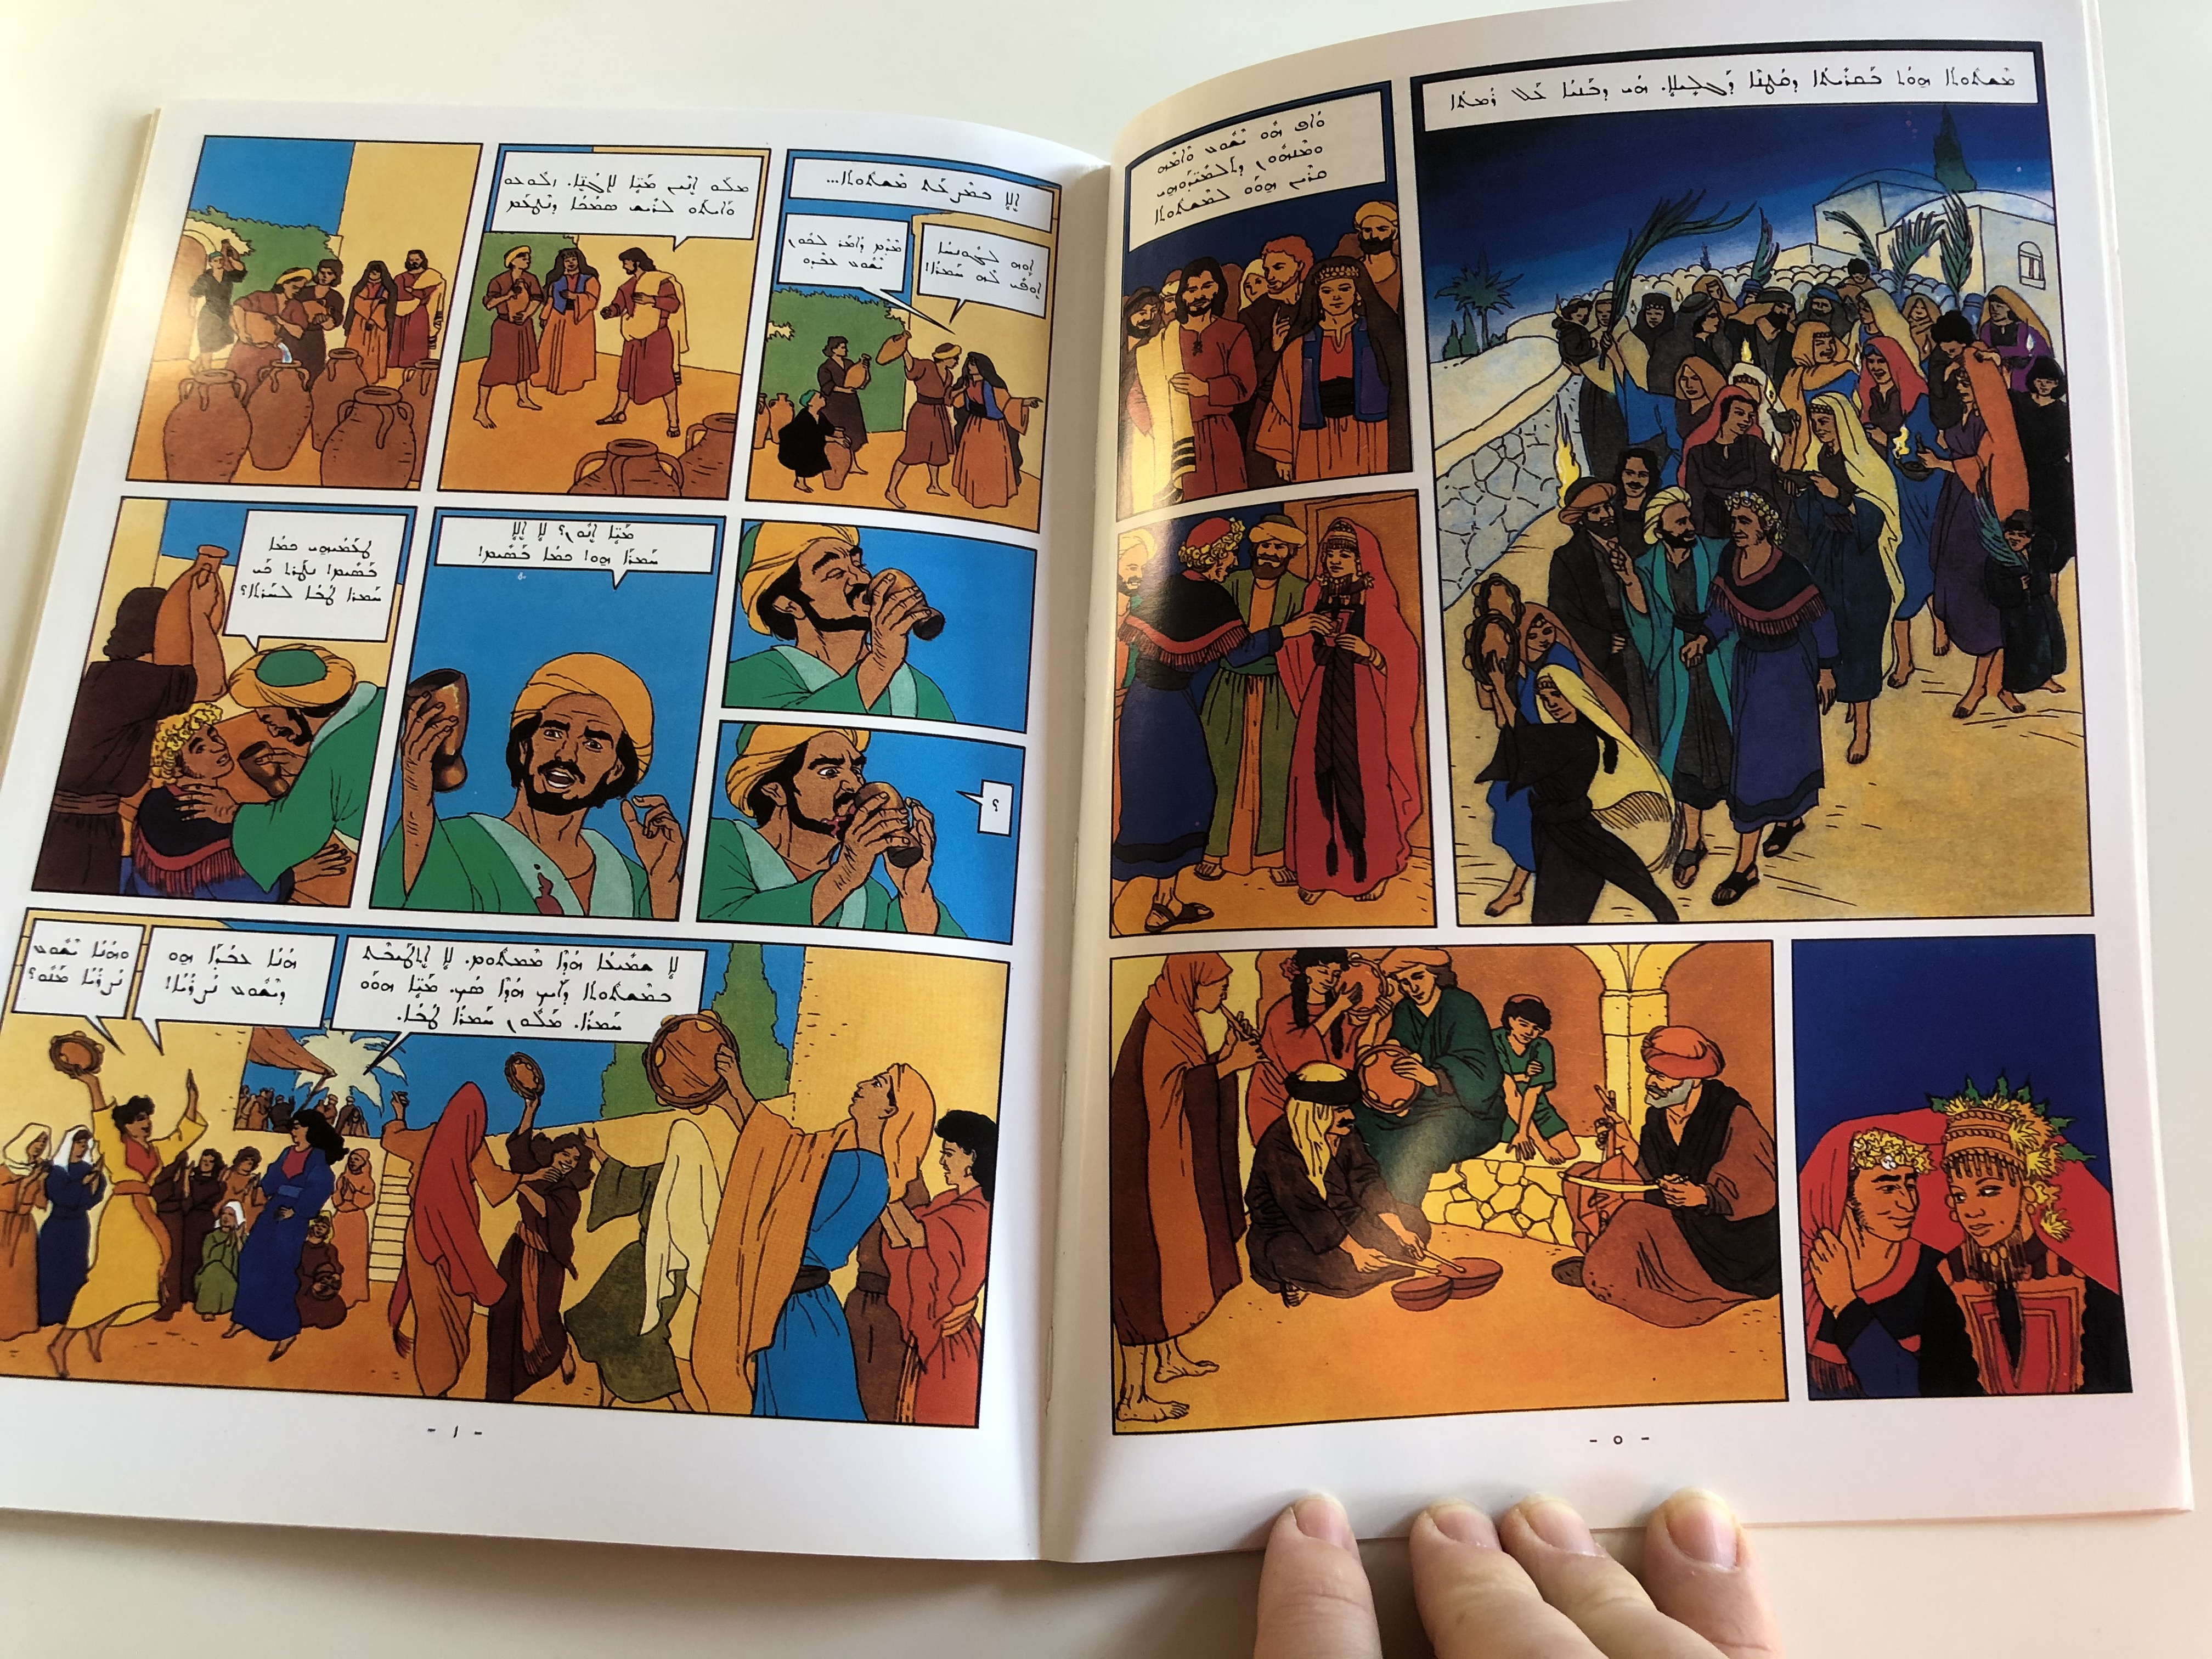 syriac-picture-new-testament-paperback-by-turkish-bible-society-5.jpg